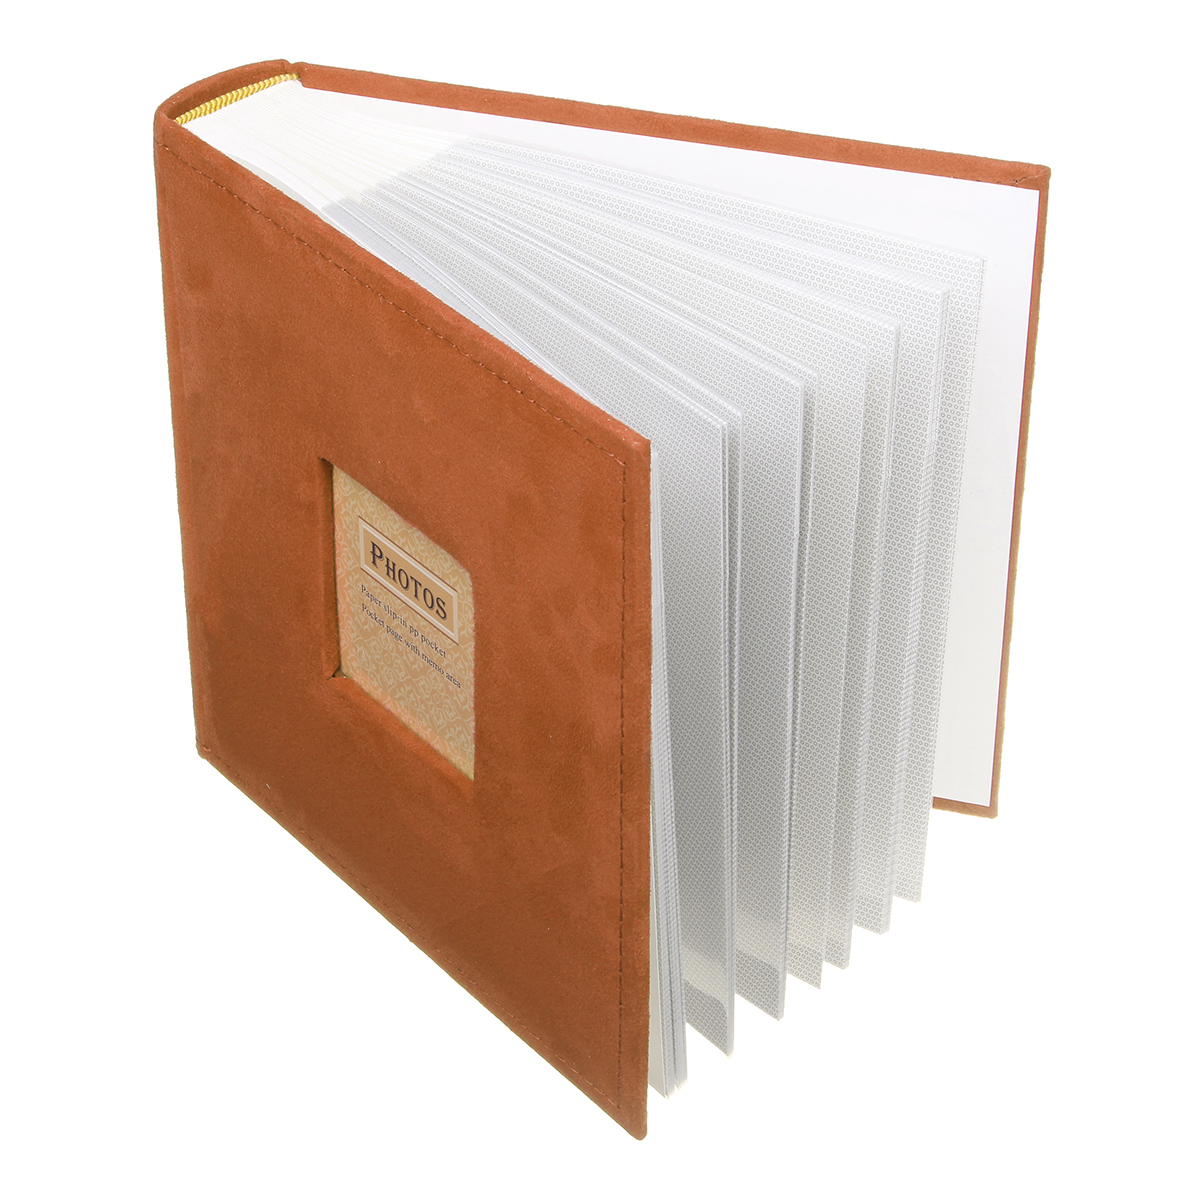 Holds 200 Photos Slip In Memo Photo Album Family Memory Notebook Picture Albums 200 Photos for Photographs Albums Book image